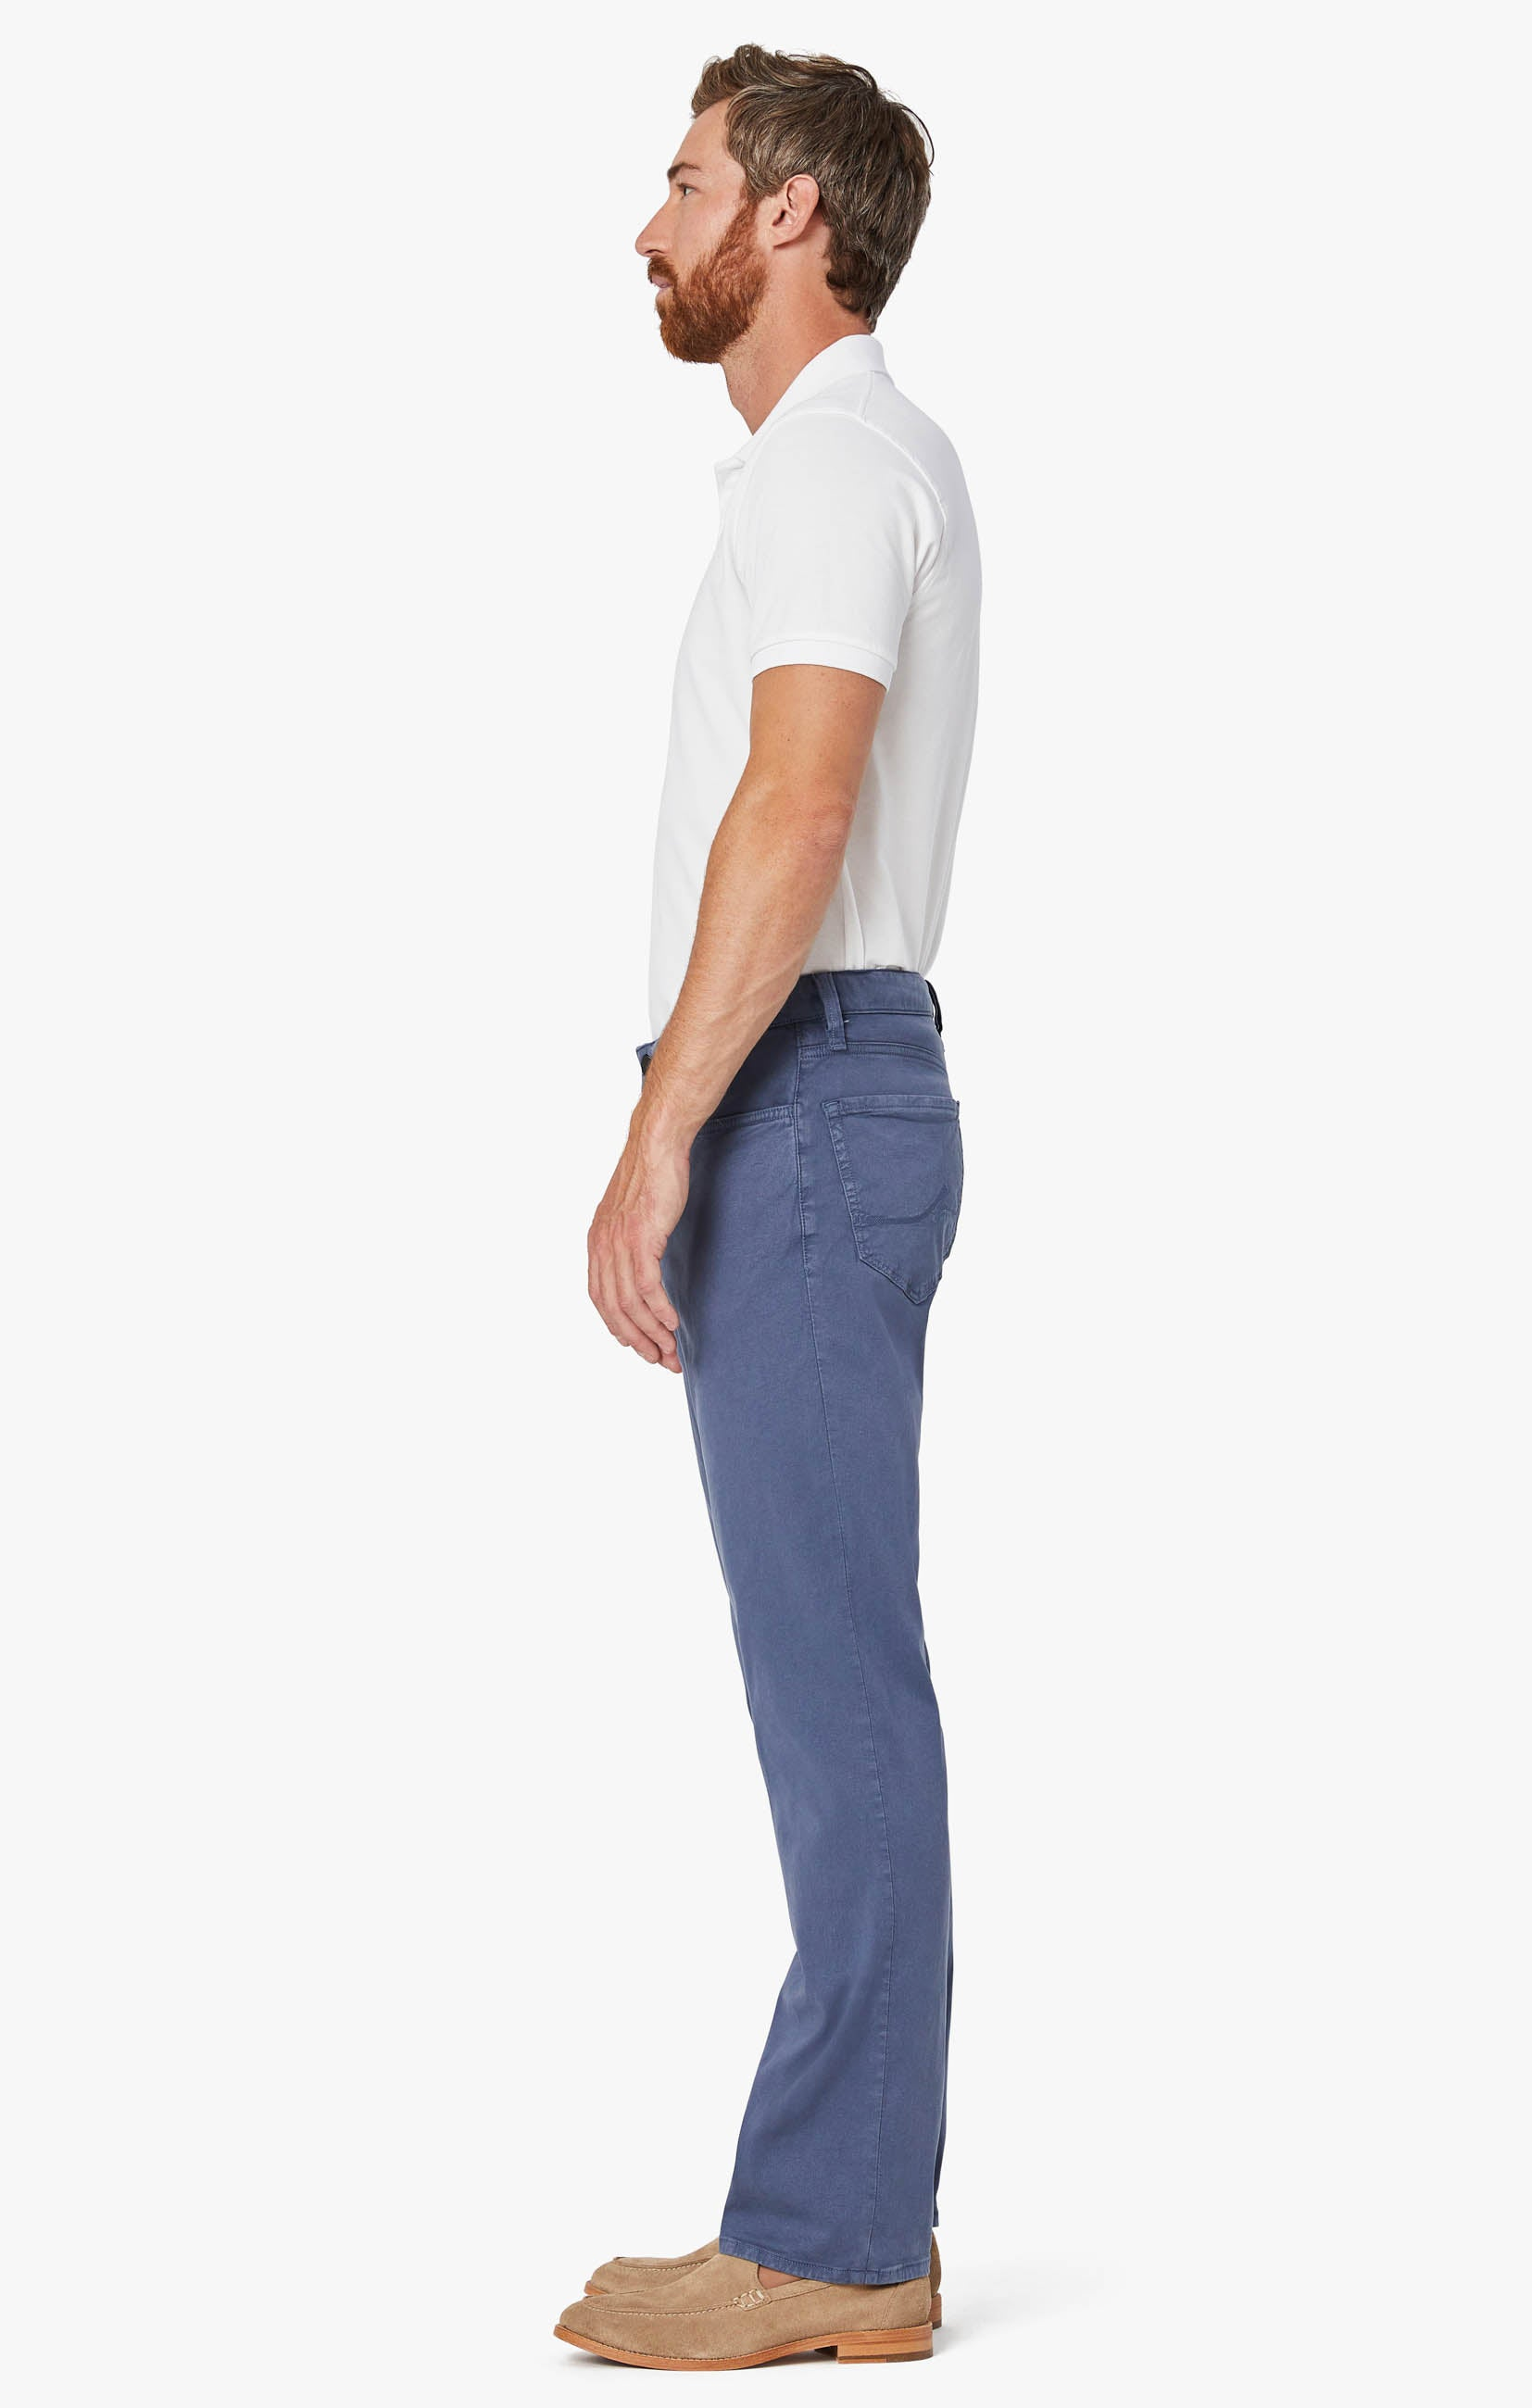 Courage Straight Leg Pants In Horizon Soft Touch Image 2